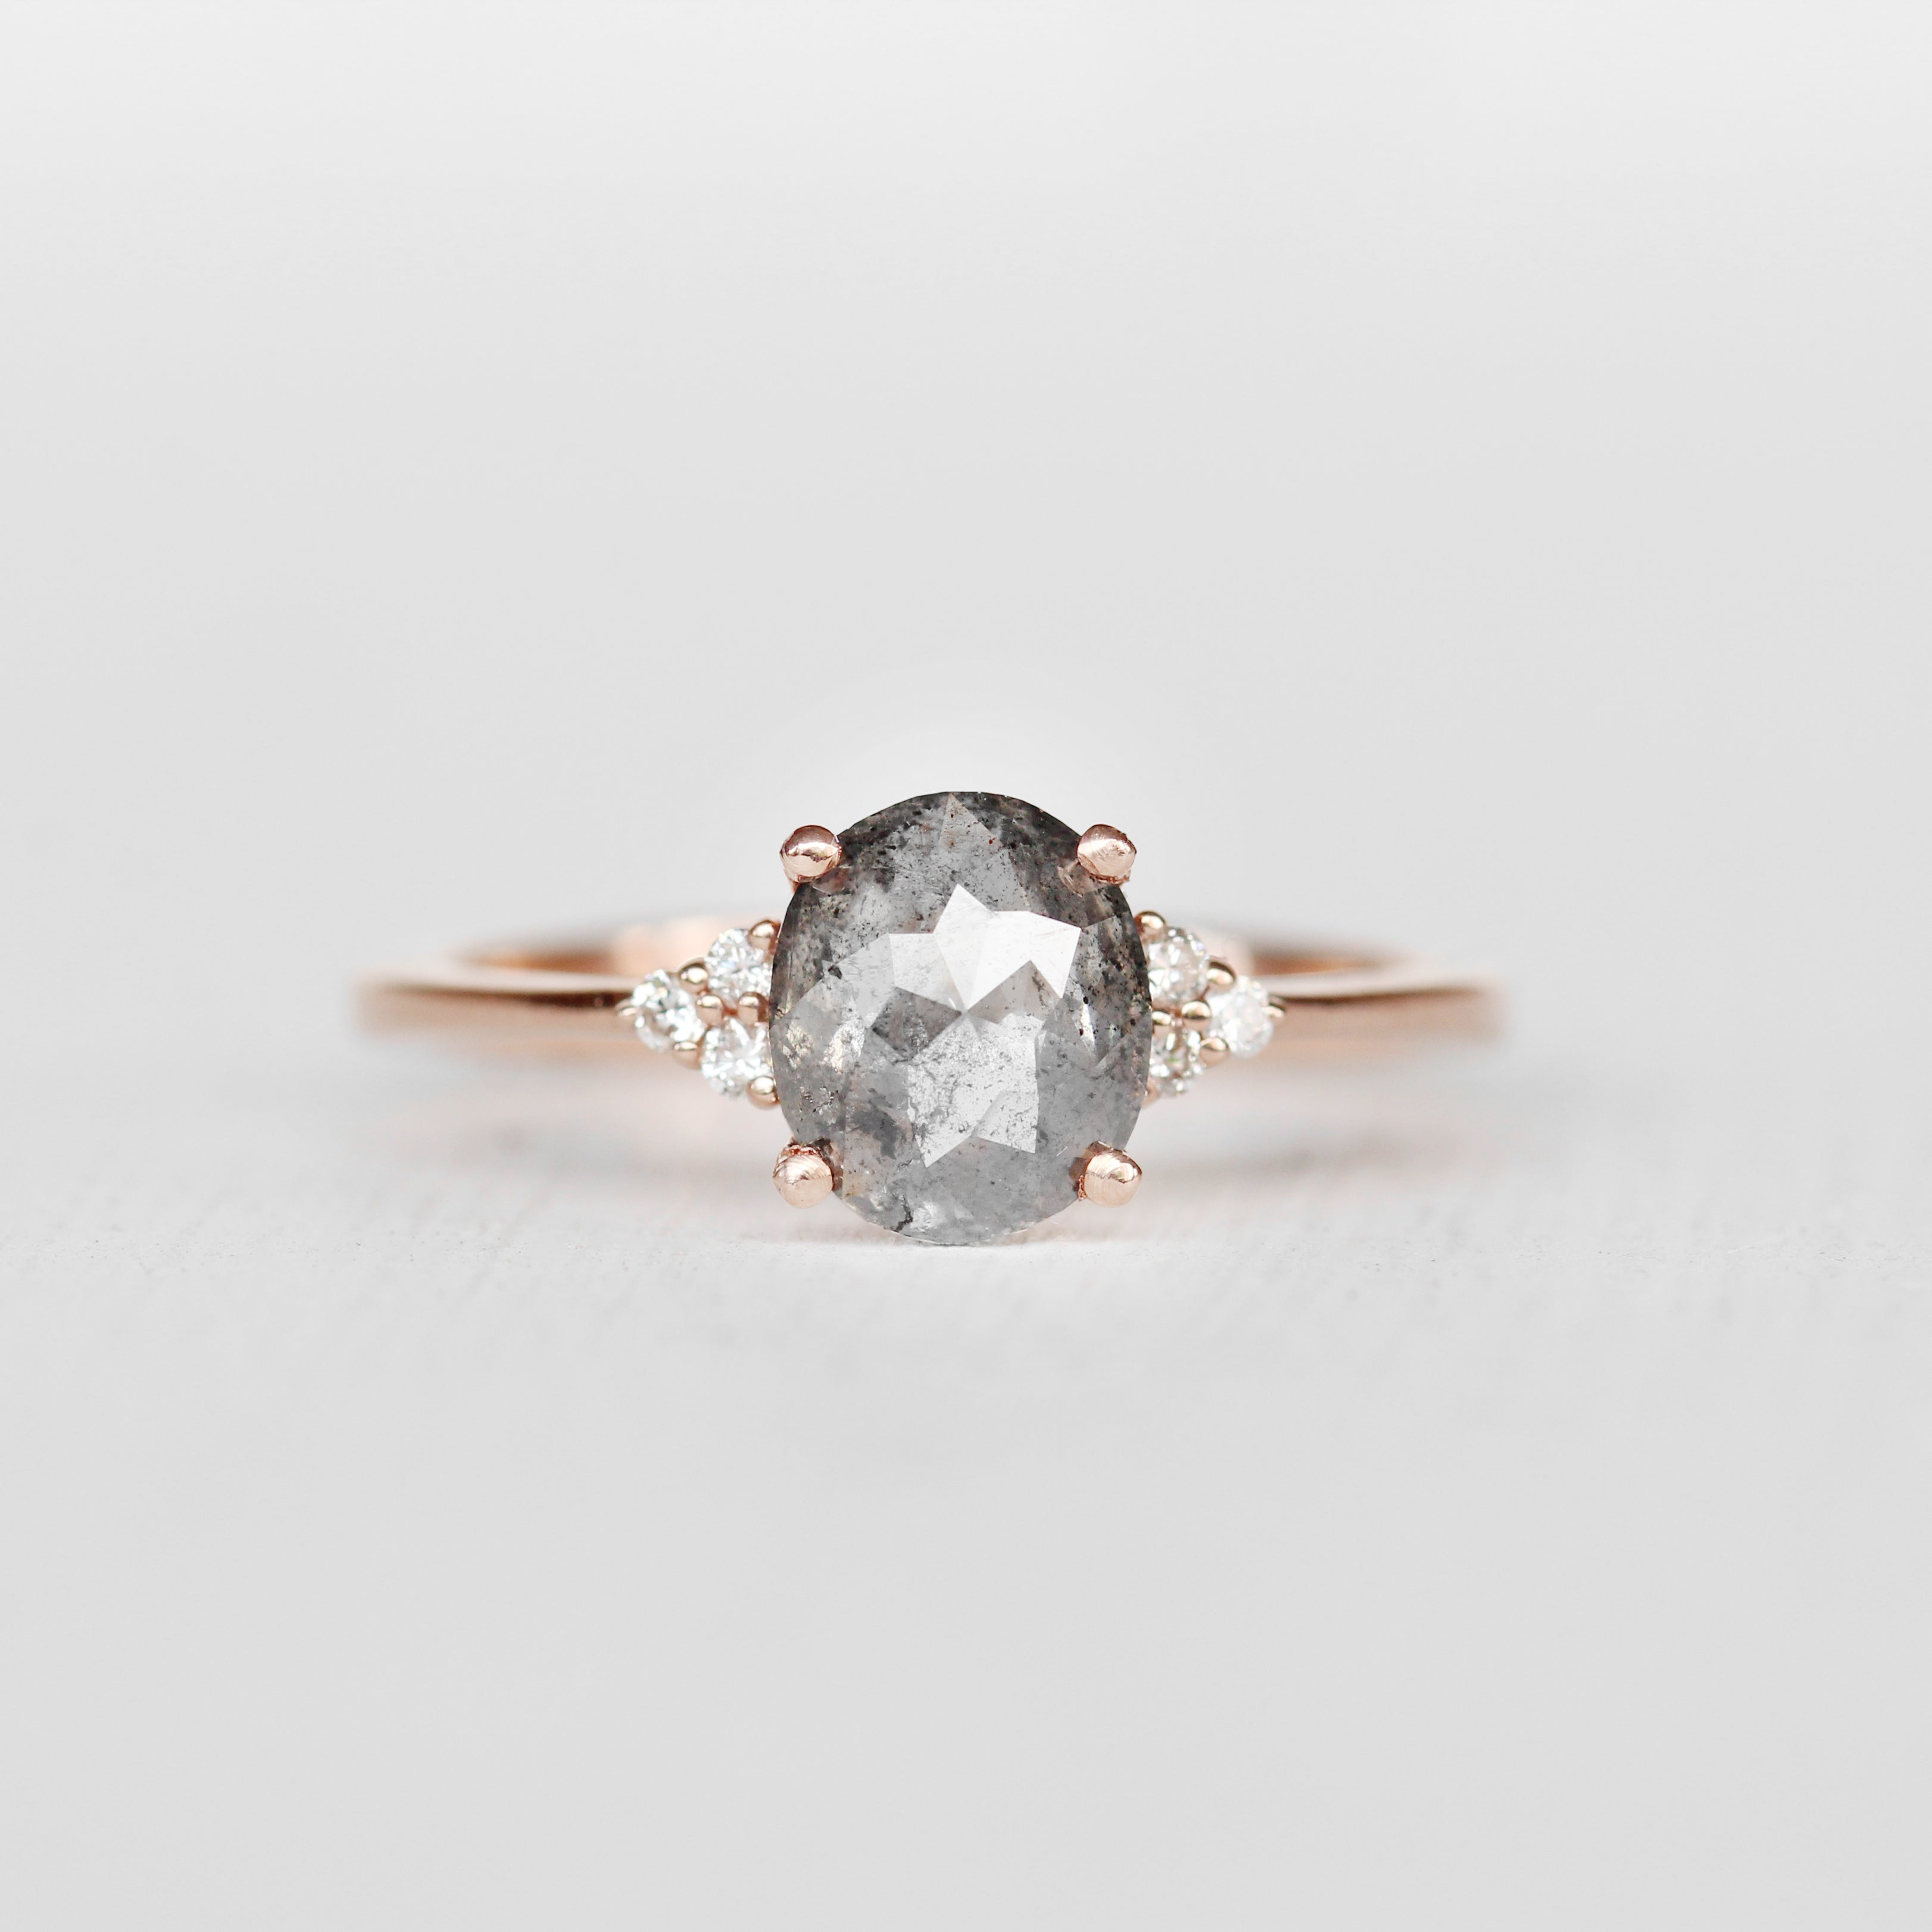 Imogene Ring with a 1.02 ct Celestial Diamond in 10k Rose Gold - Ready to size and ship